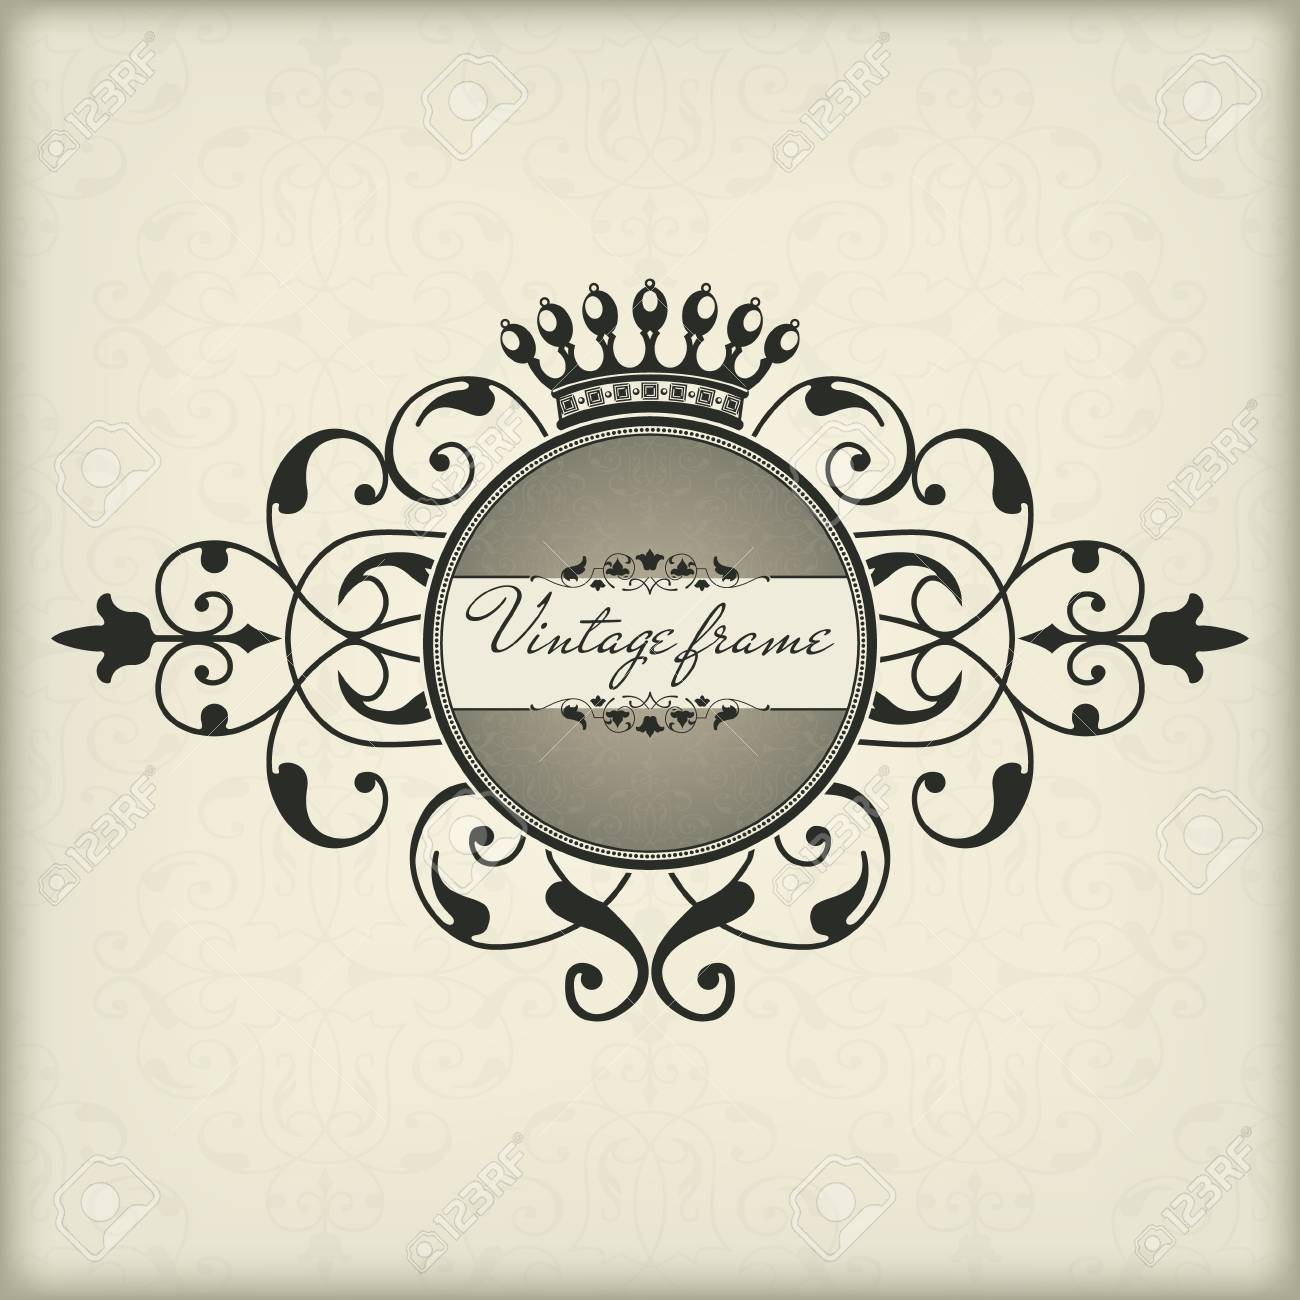 The  image Vintage frame with crown Stock Vector - 14836233